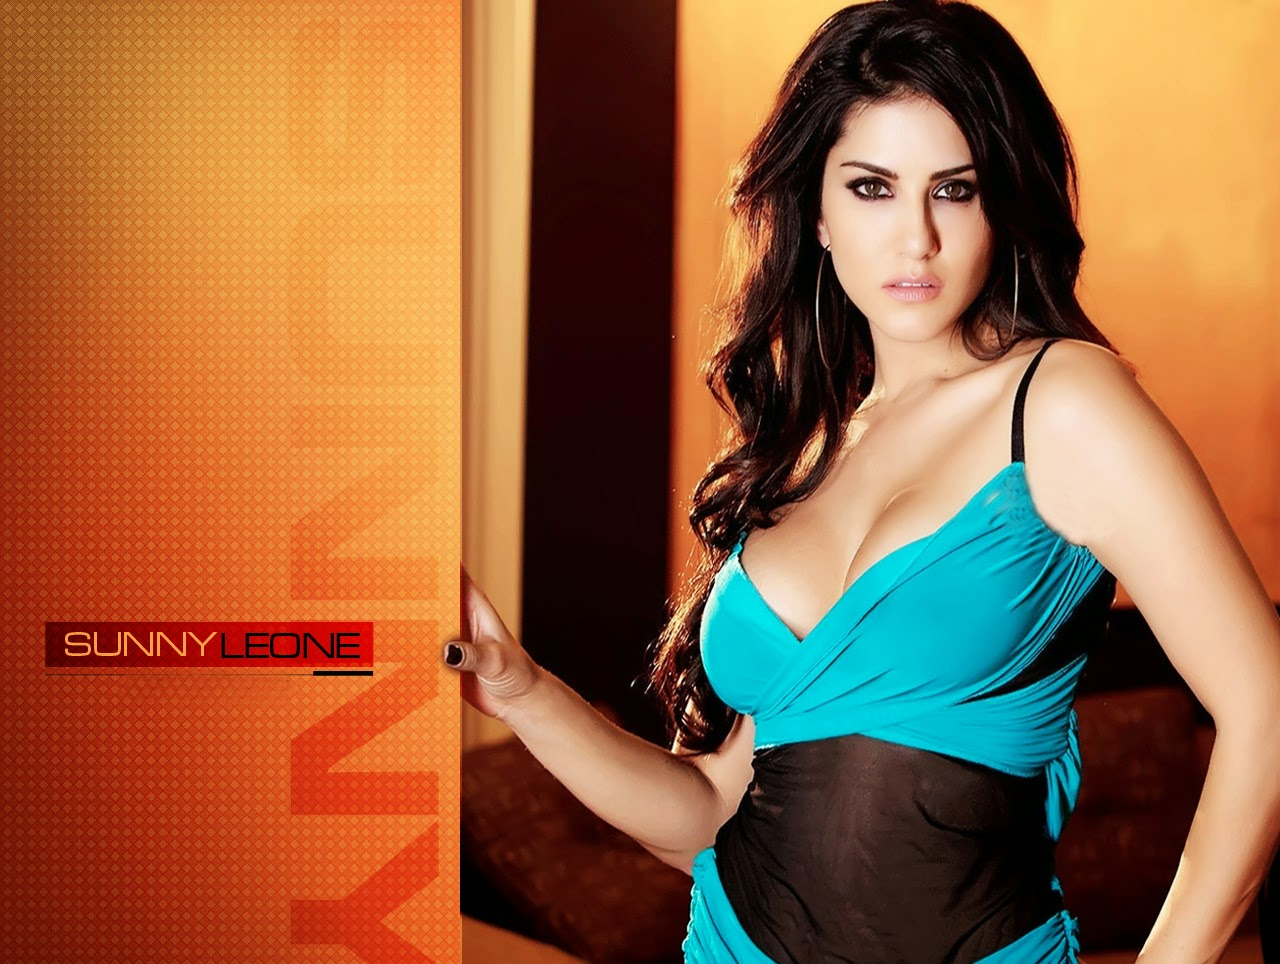 Global Pictures Gallery Sunny Leone Full Hd Wallpapers-8790